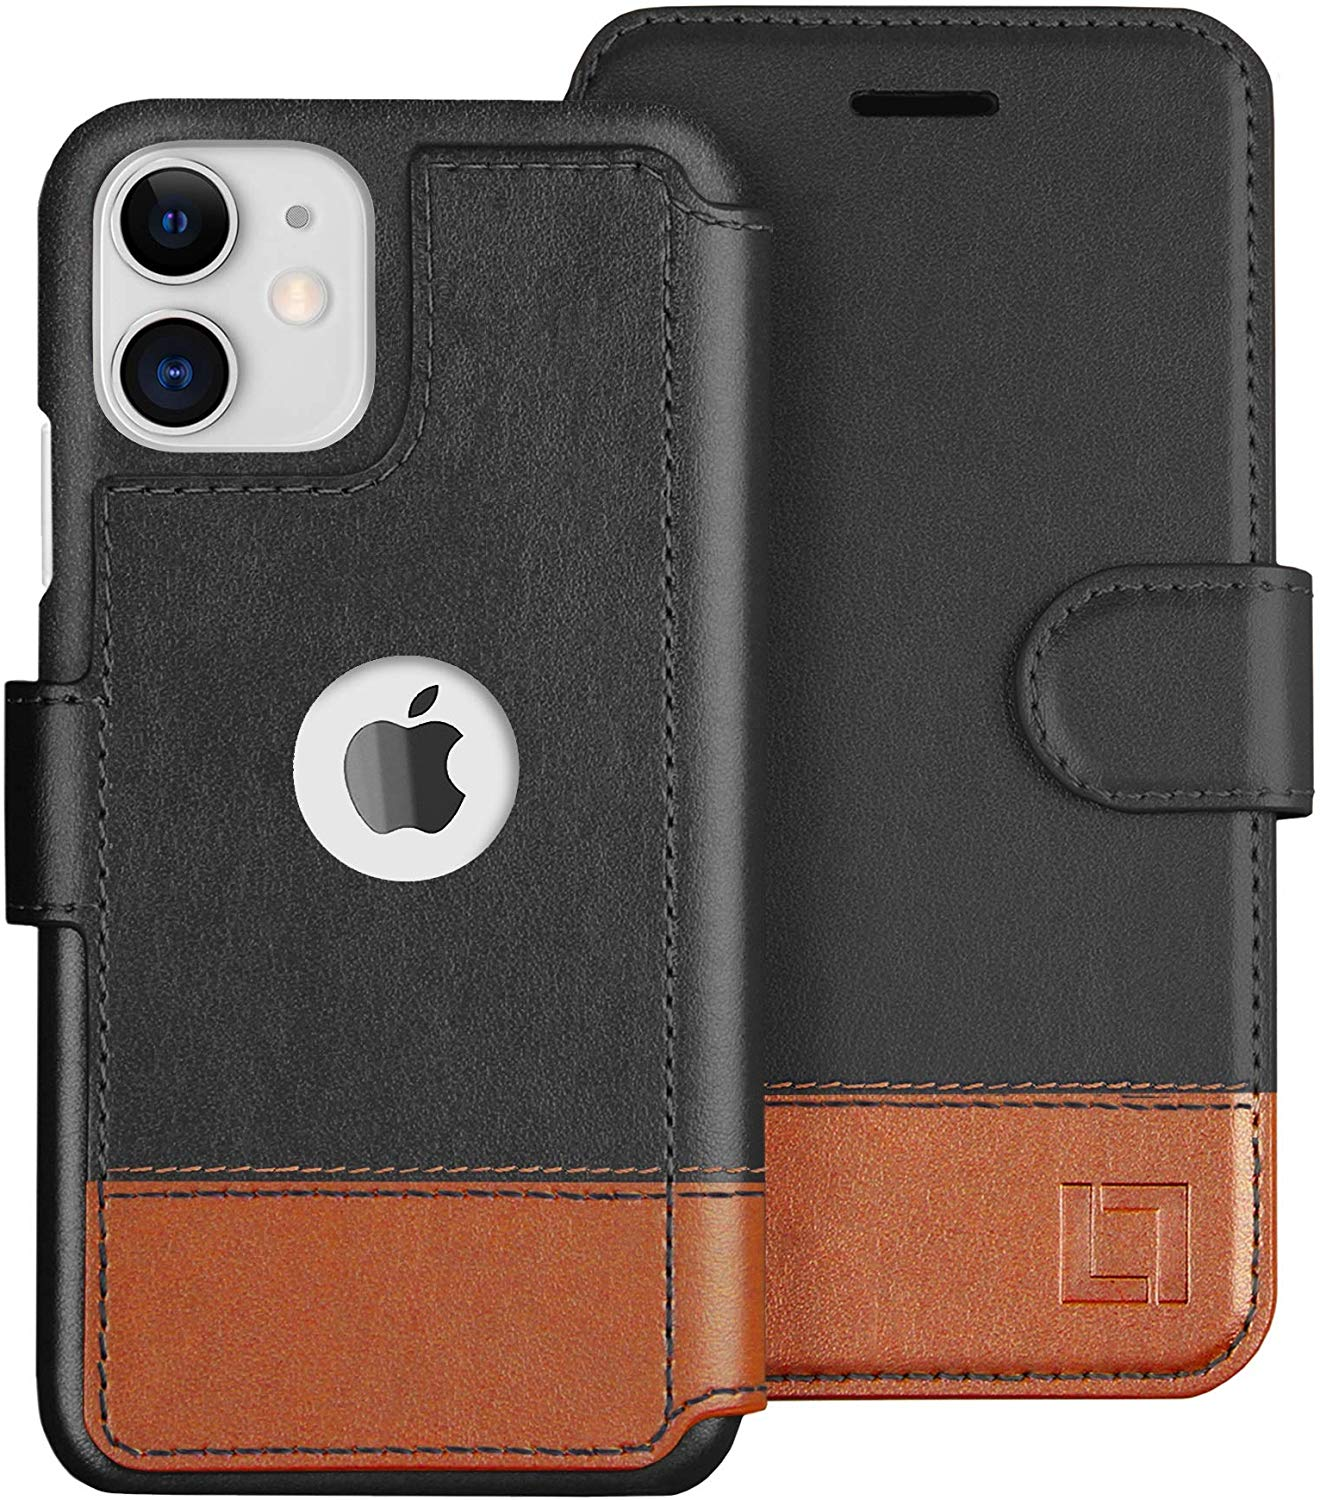 birthday-gifts-for-him-phone-case